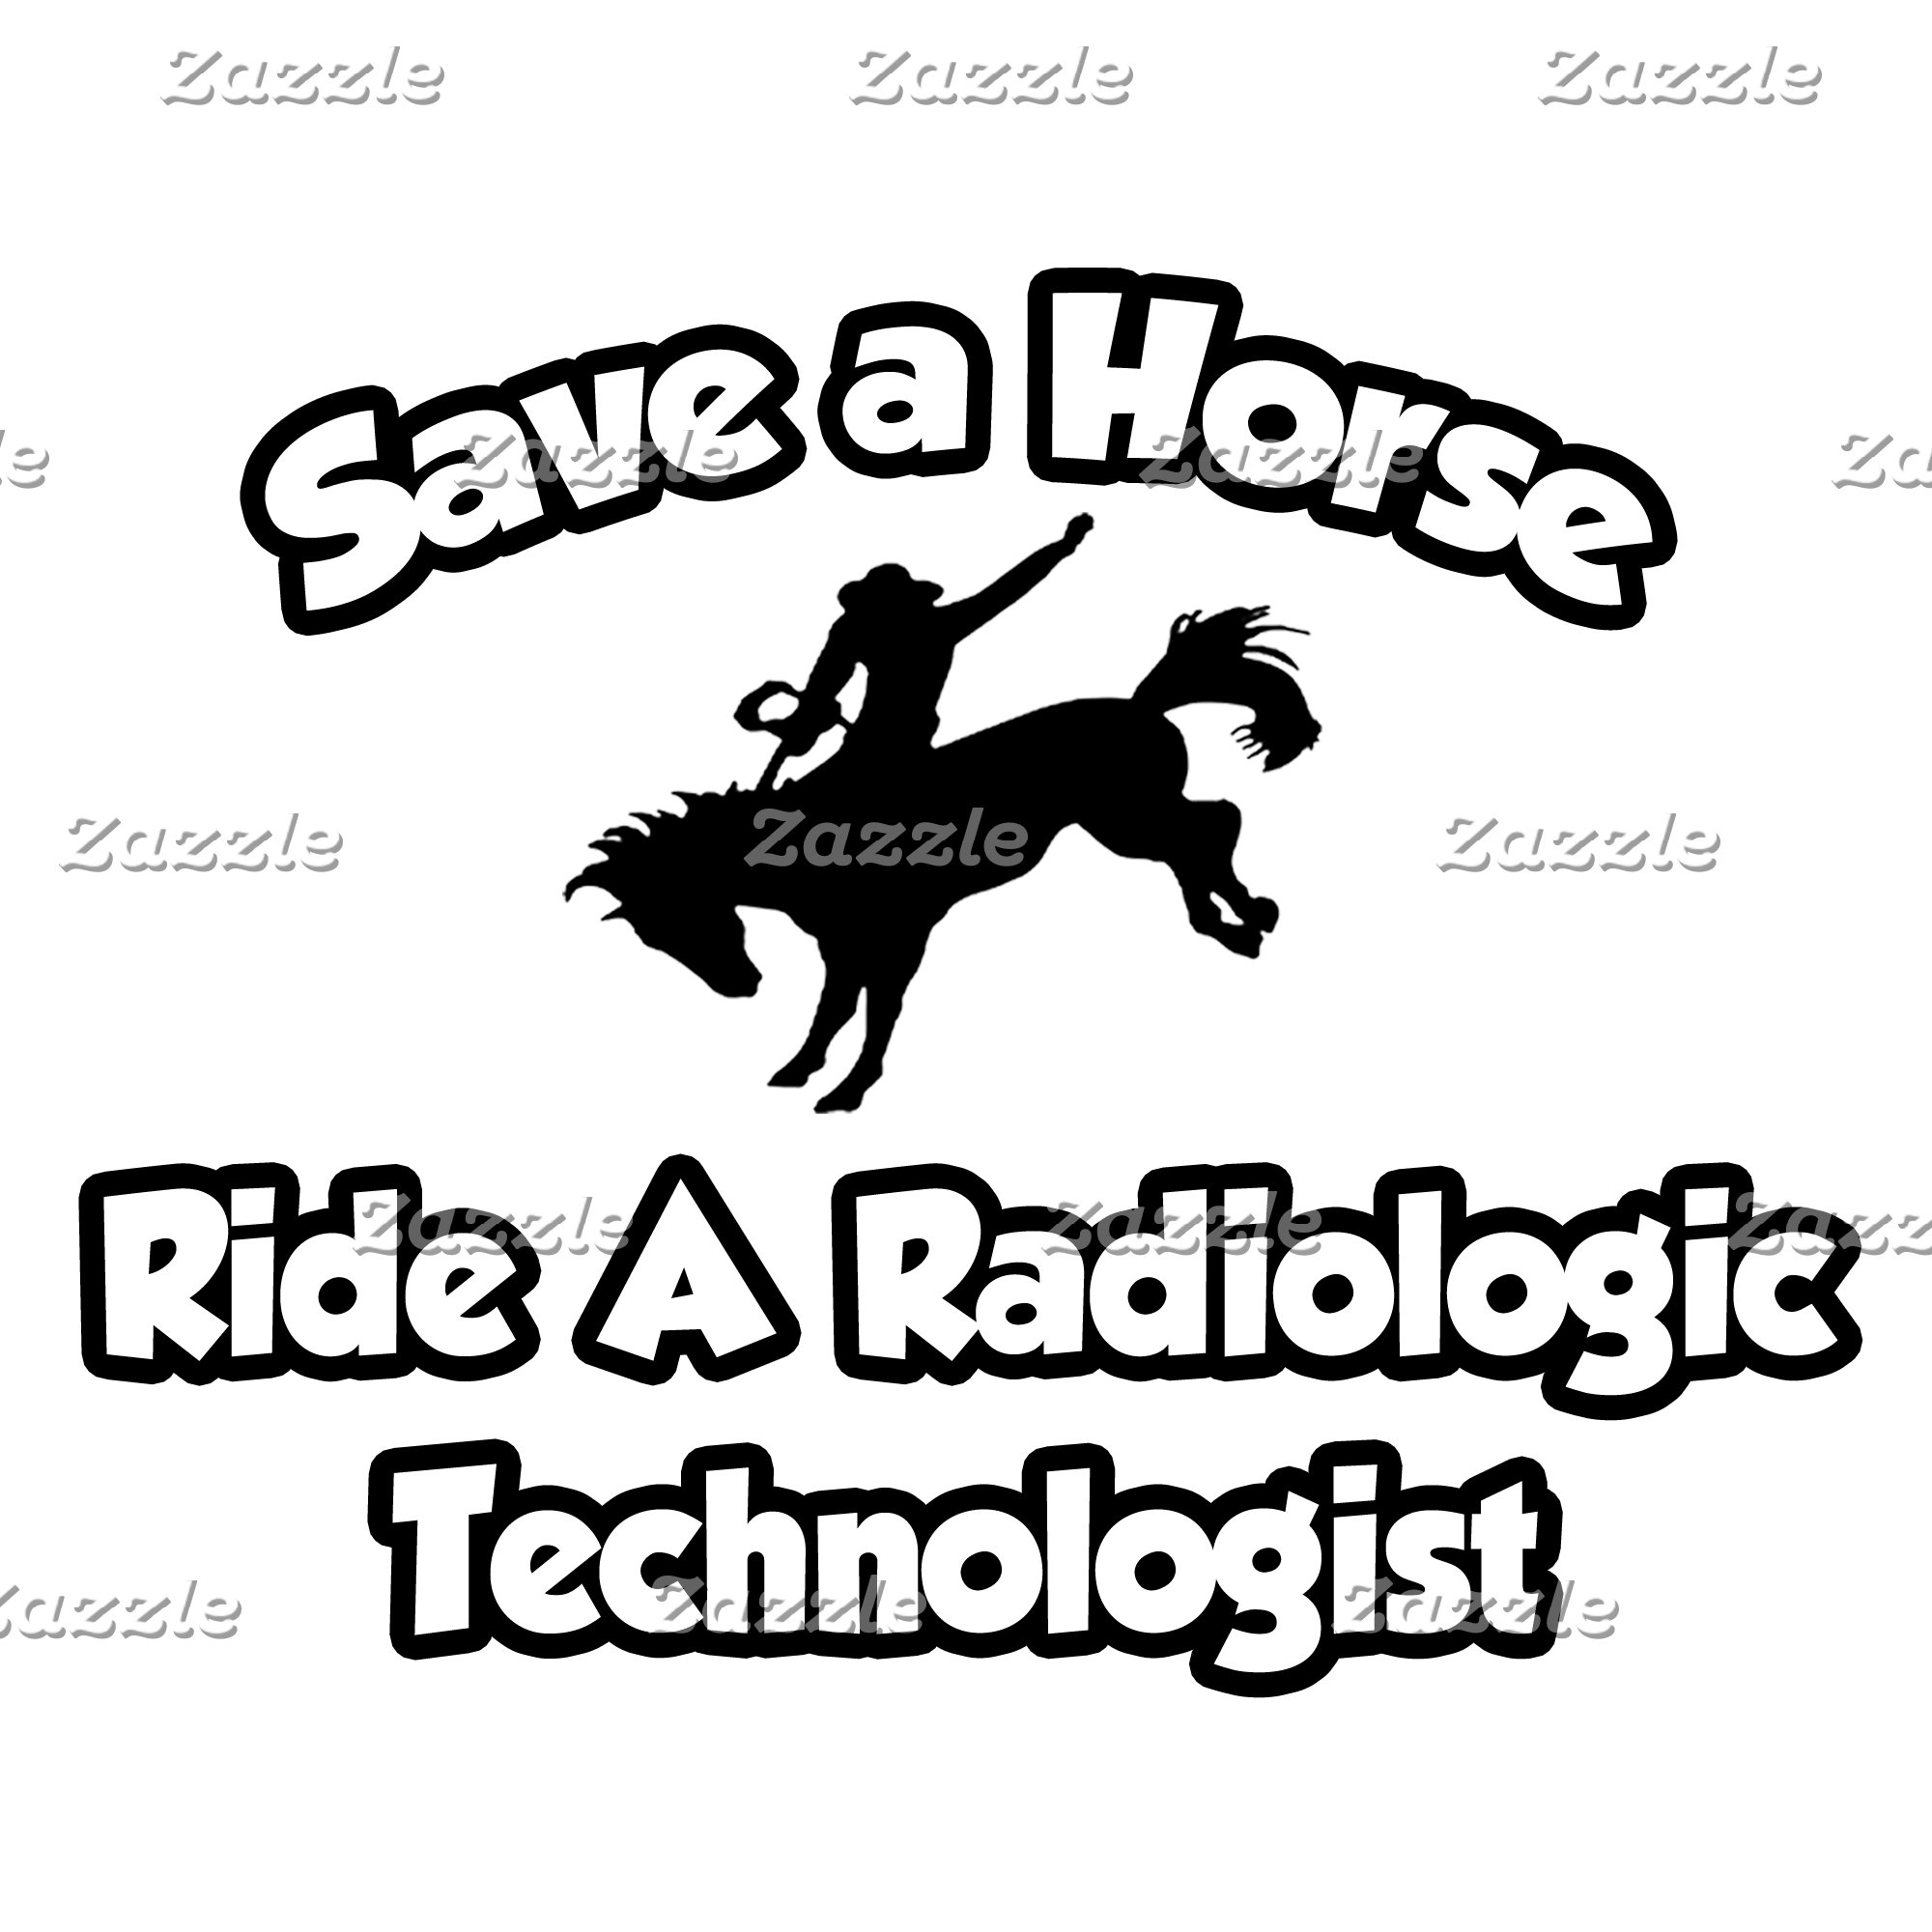 Save a Horse, Ride a Radiologic Technologist